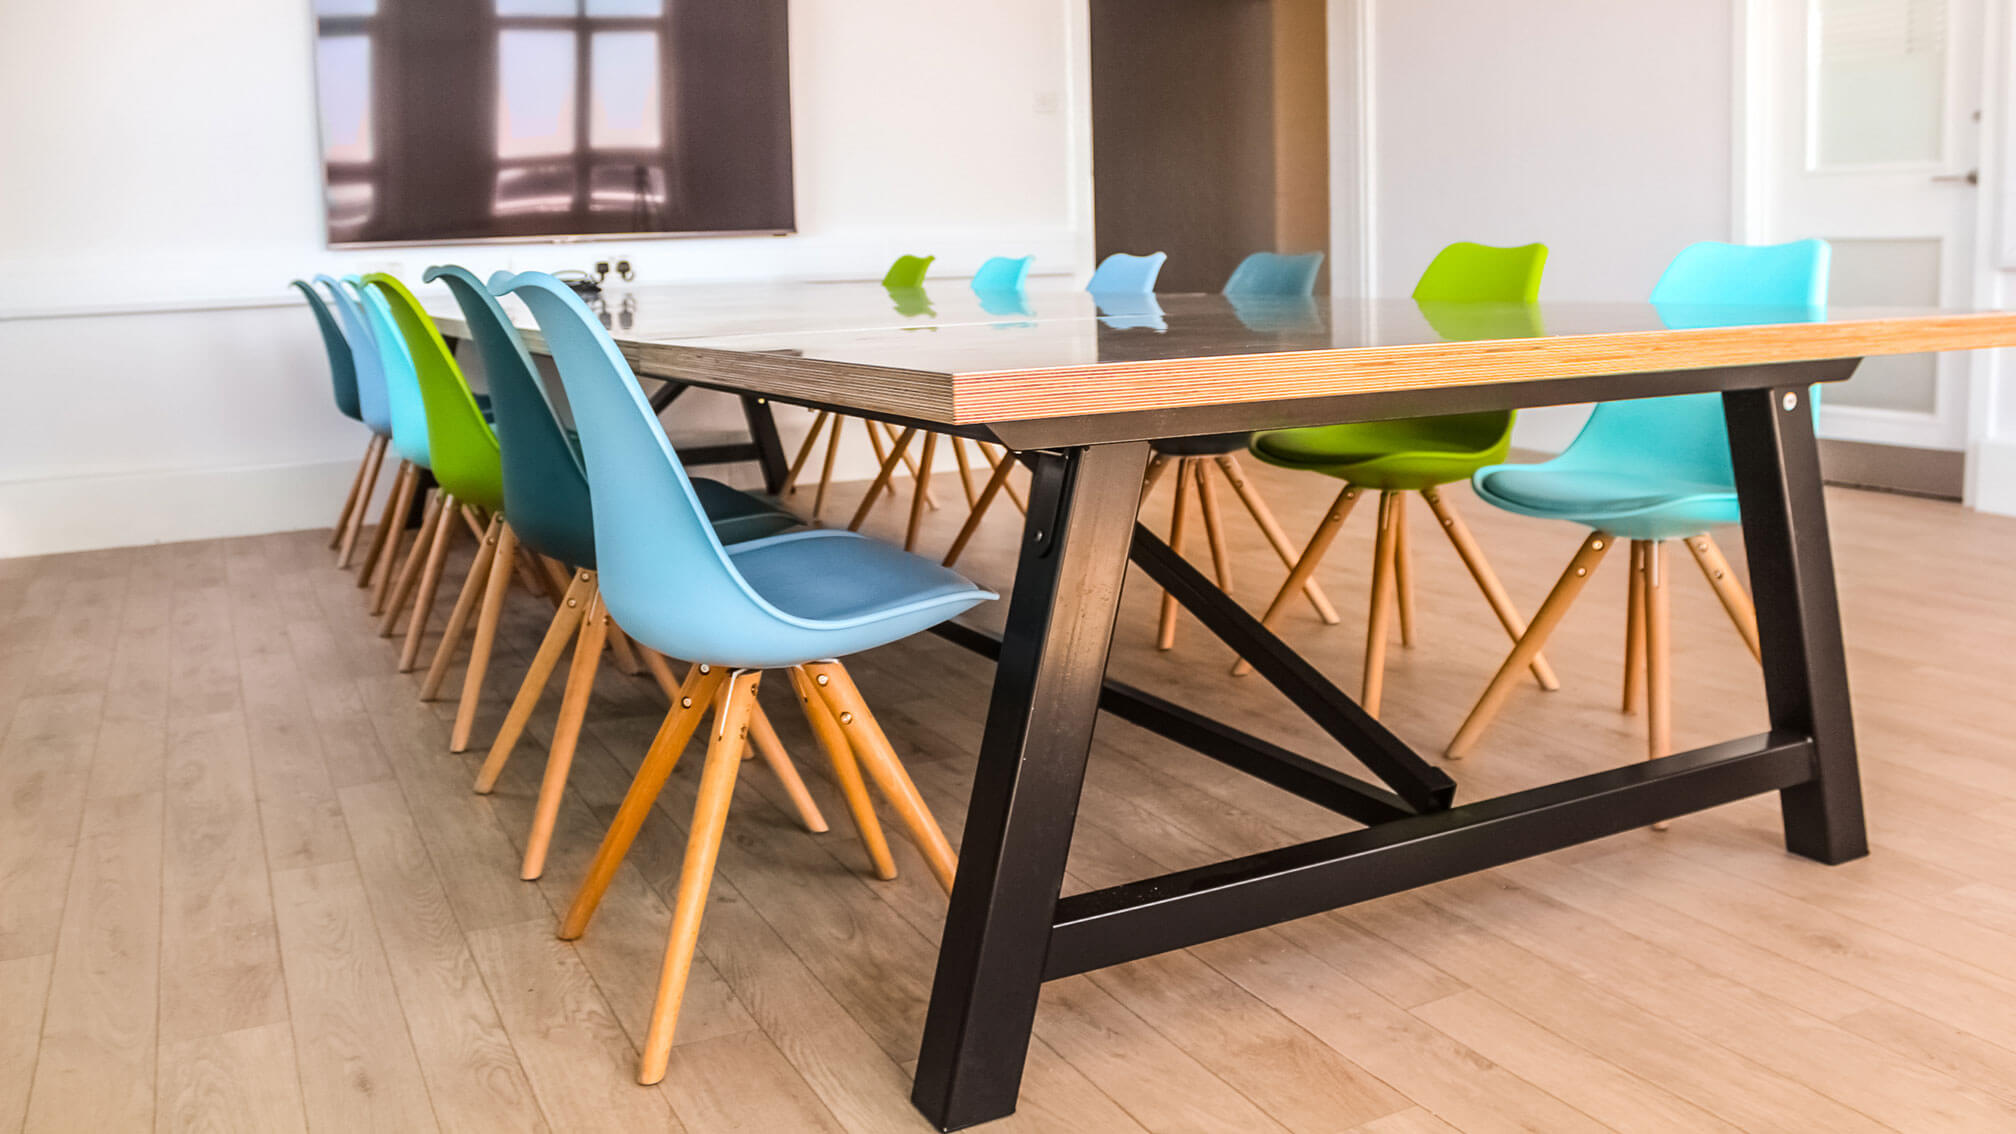 Rigg zinc topped table